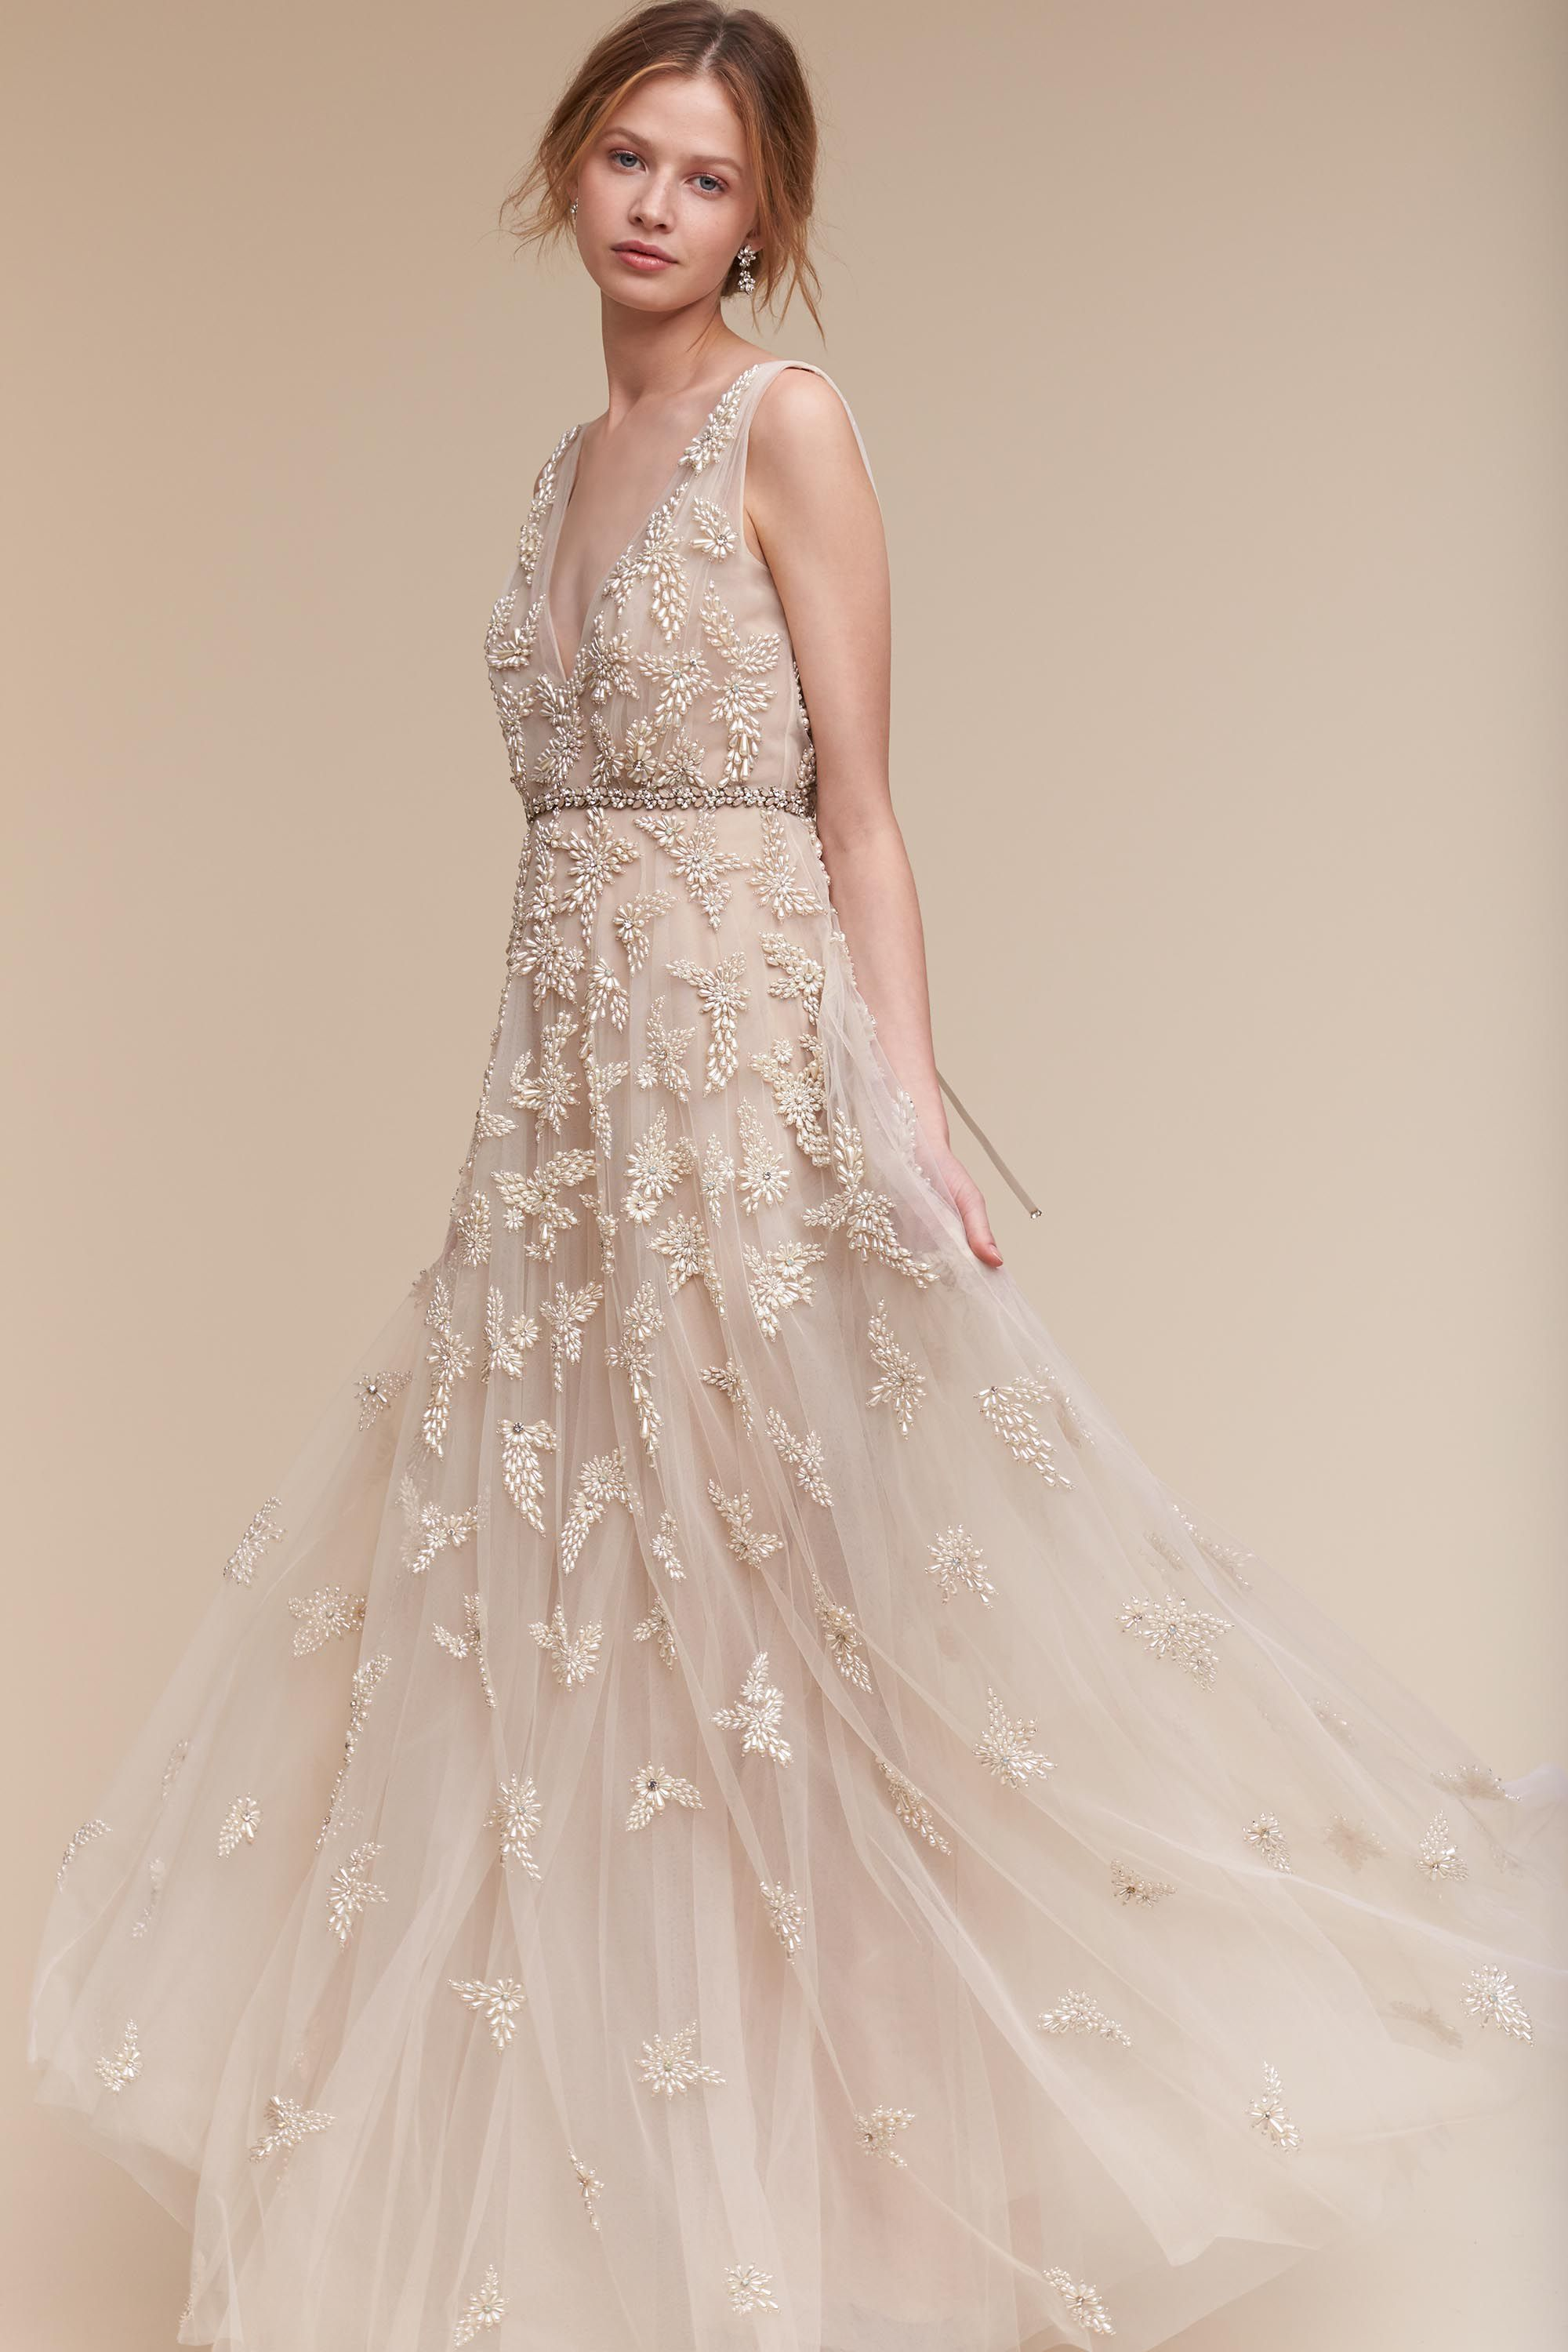 Dreamy BHLDN Wedding Dresses - Kai Gown